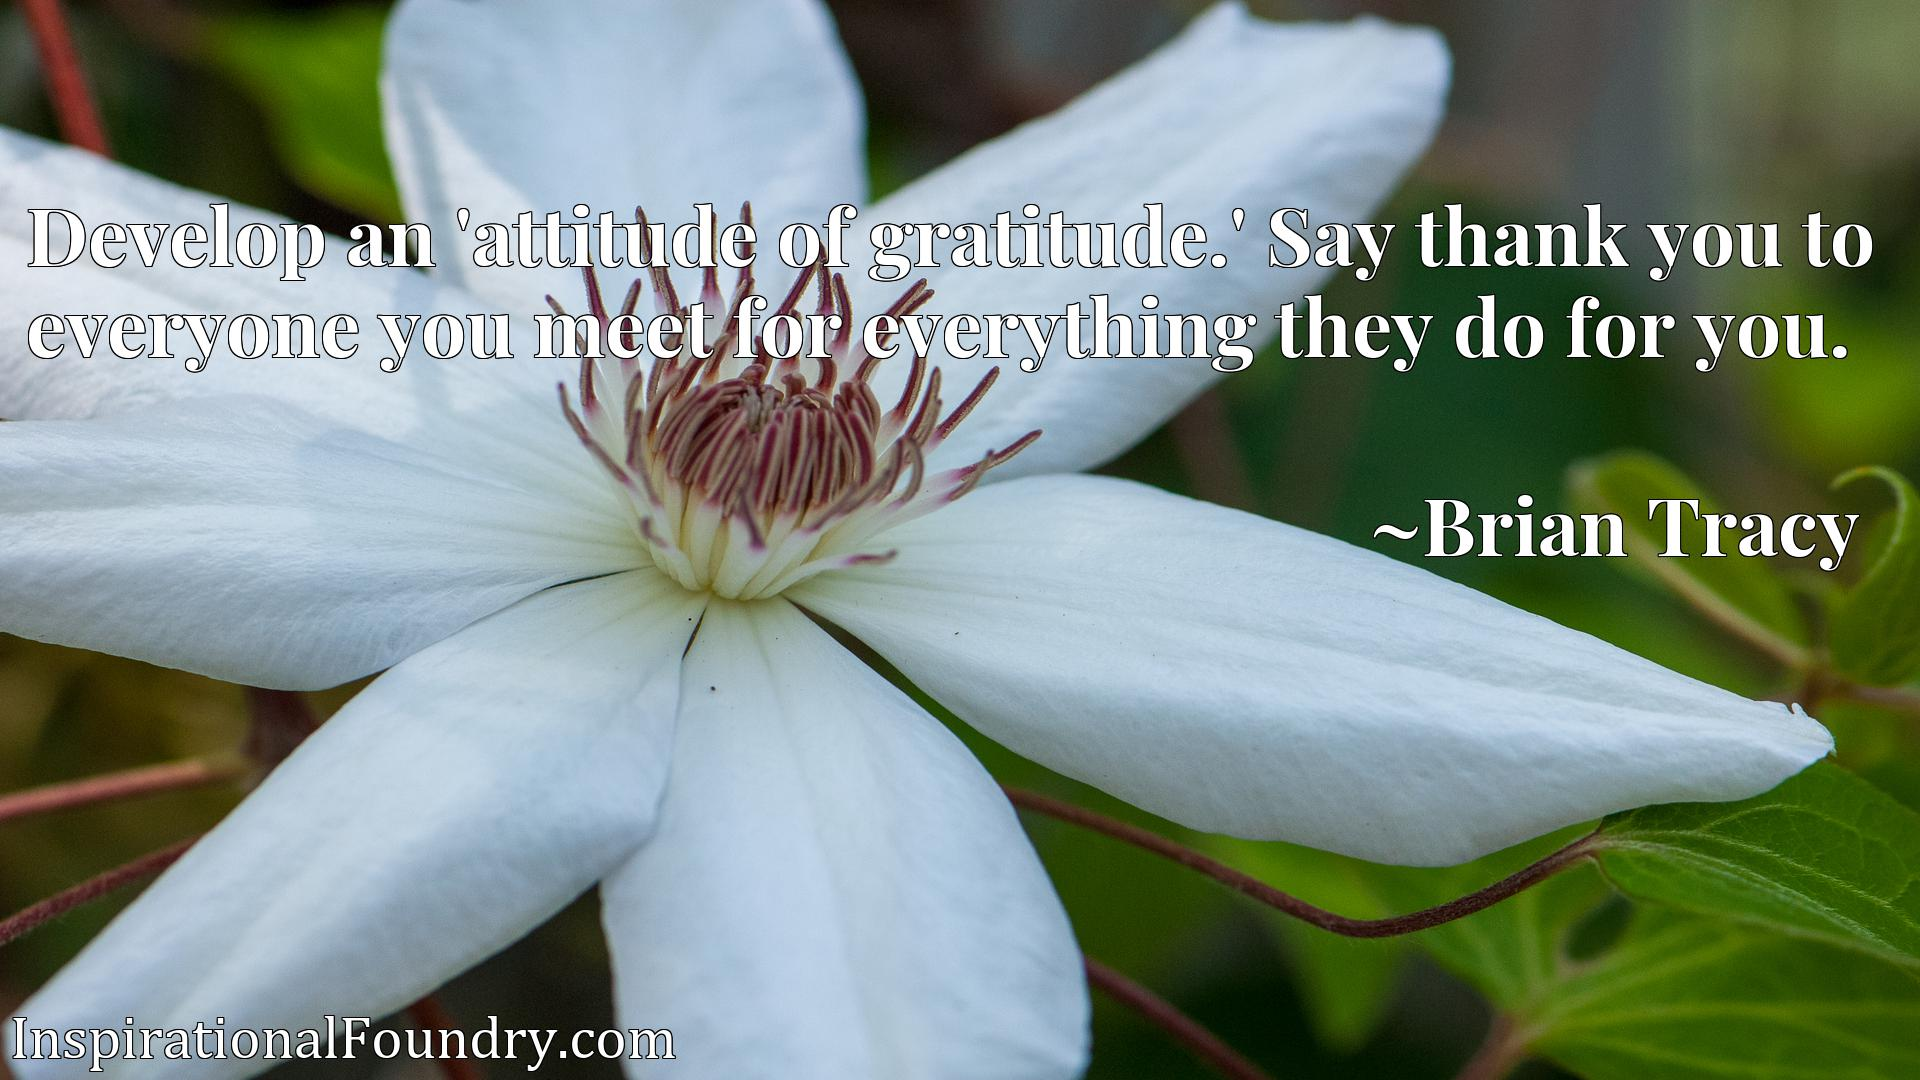 Develop an 'attitude of gratitude.' Say thank you to everyone you meet for everything they do for you.